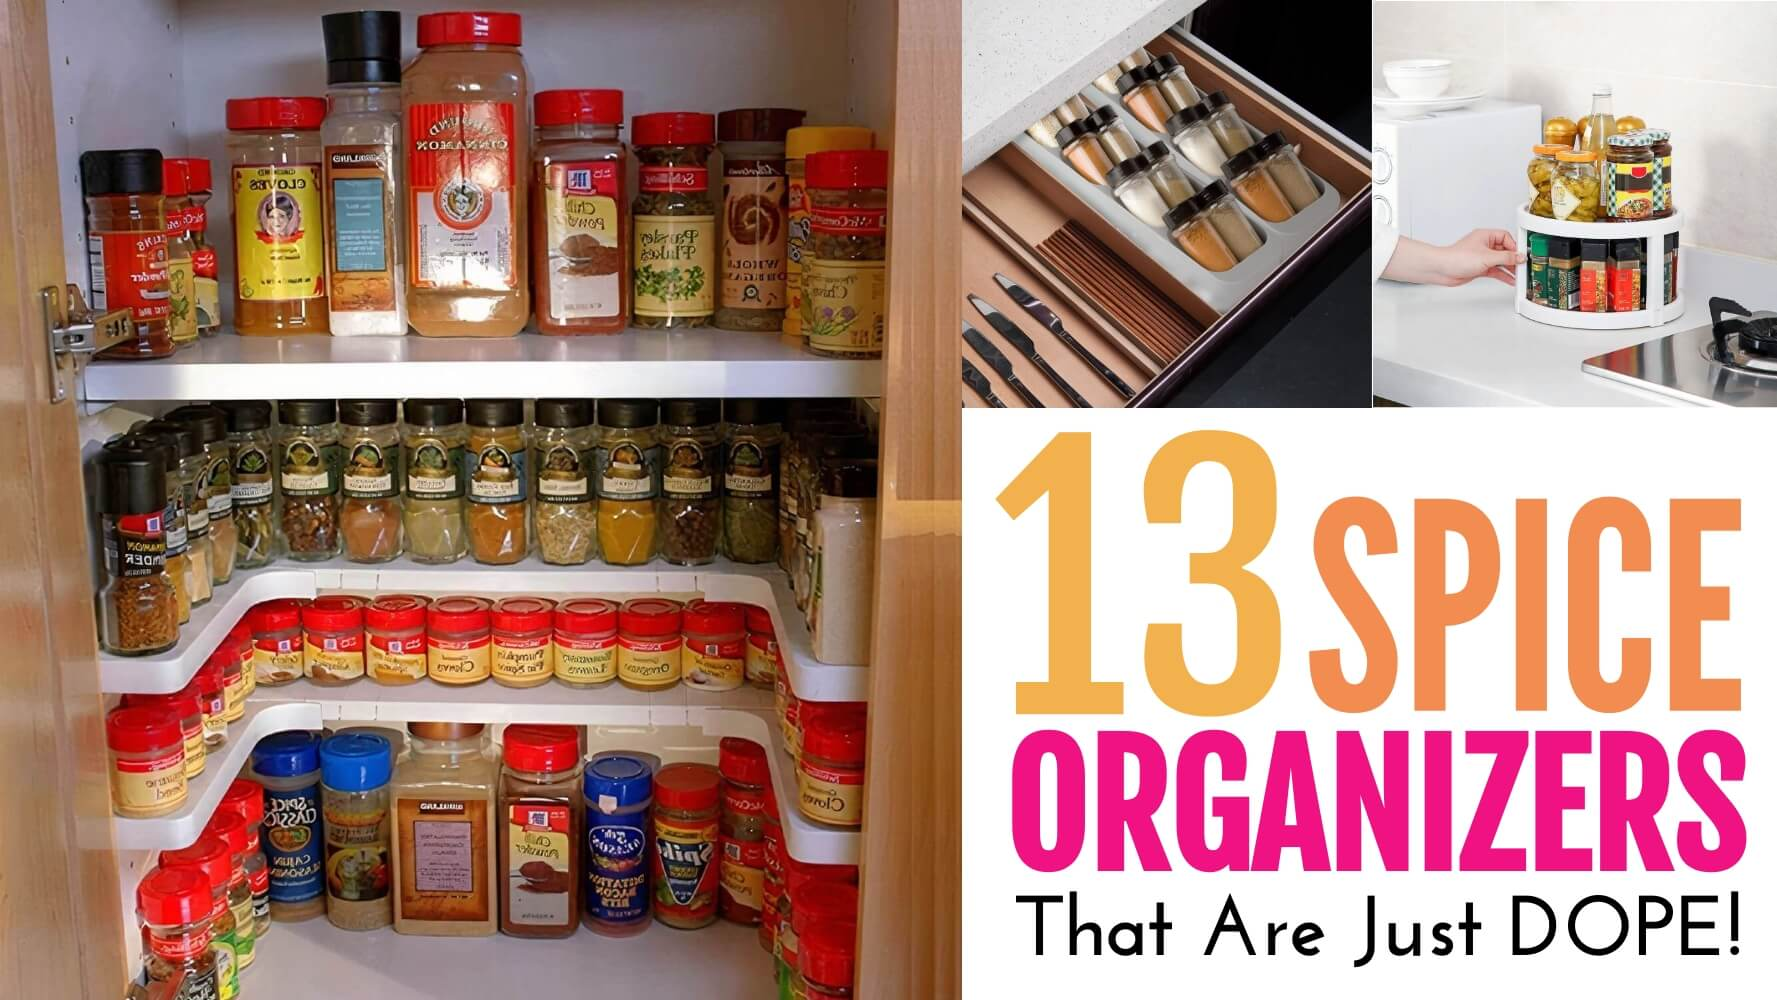 13 spice organization ideas